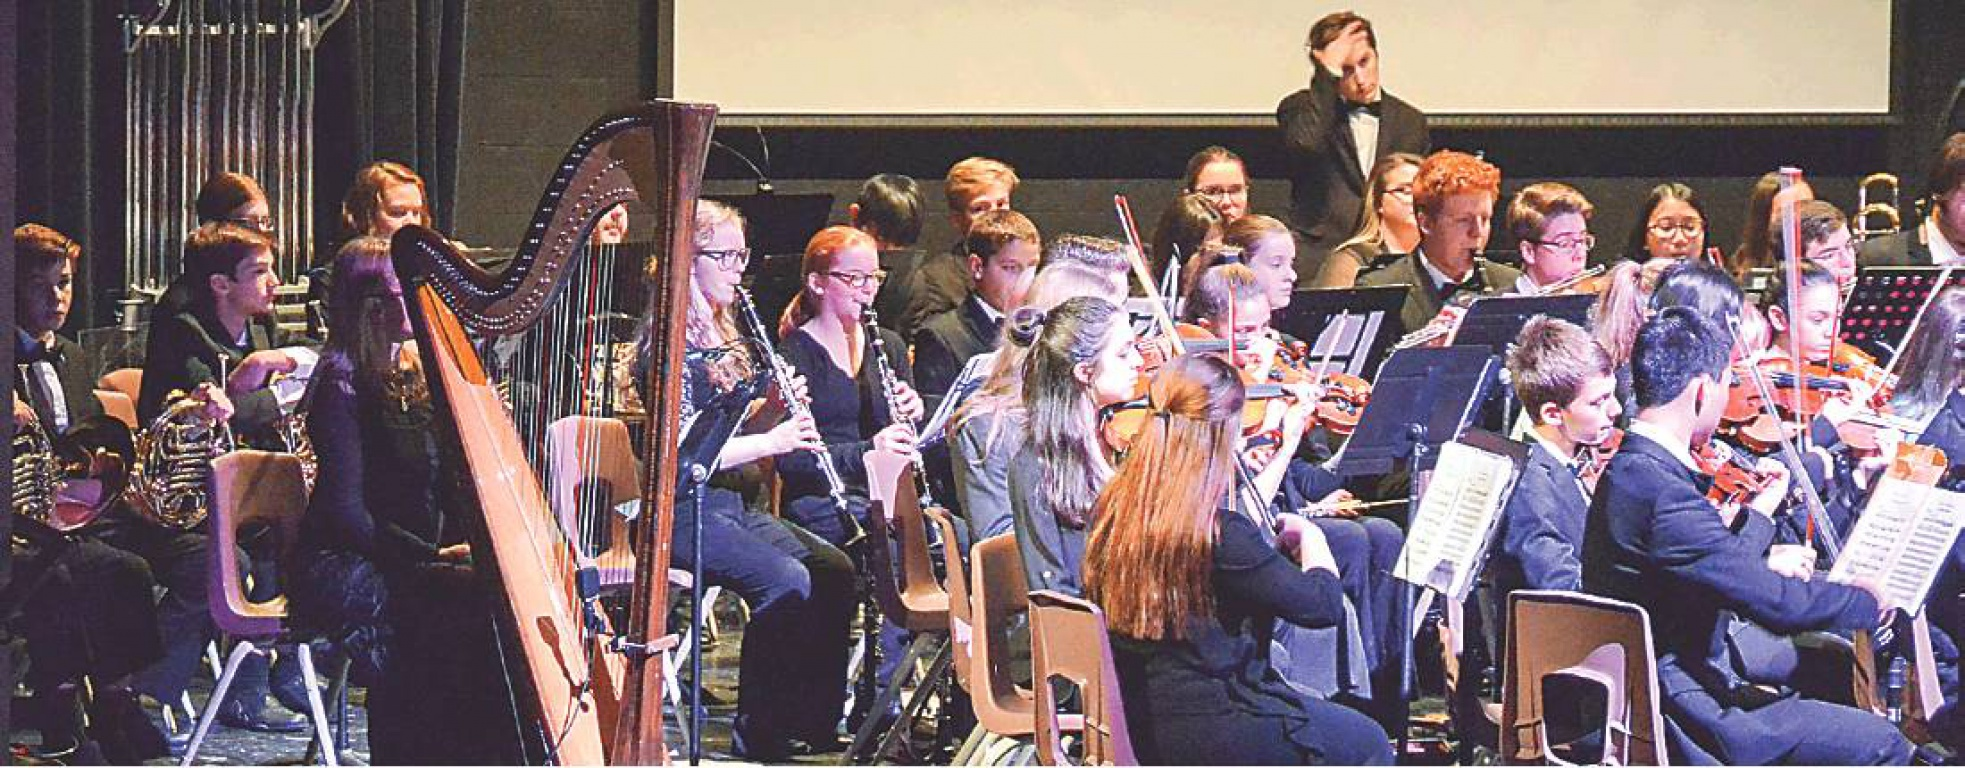 New Brunswick Youth Orchestra Concert at the Imperial Theatre